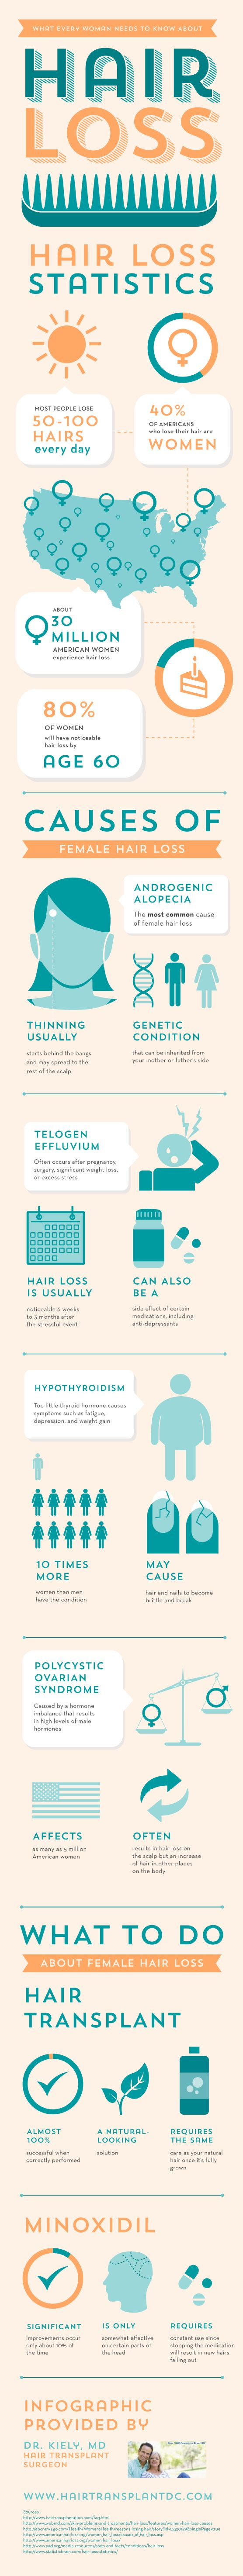 Female hair loss is something I hope never to worry about. But if it comes up, I'll definitely consult this visually appealing infographic with its easy-to-read type styling.  #infographic  #hairloss  #femalebalding